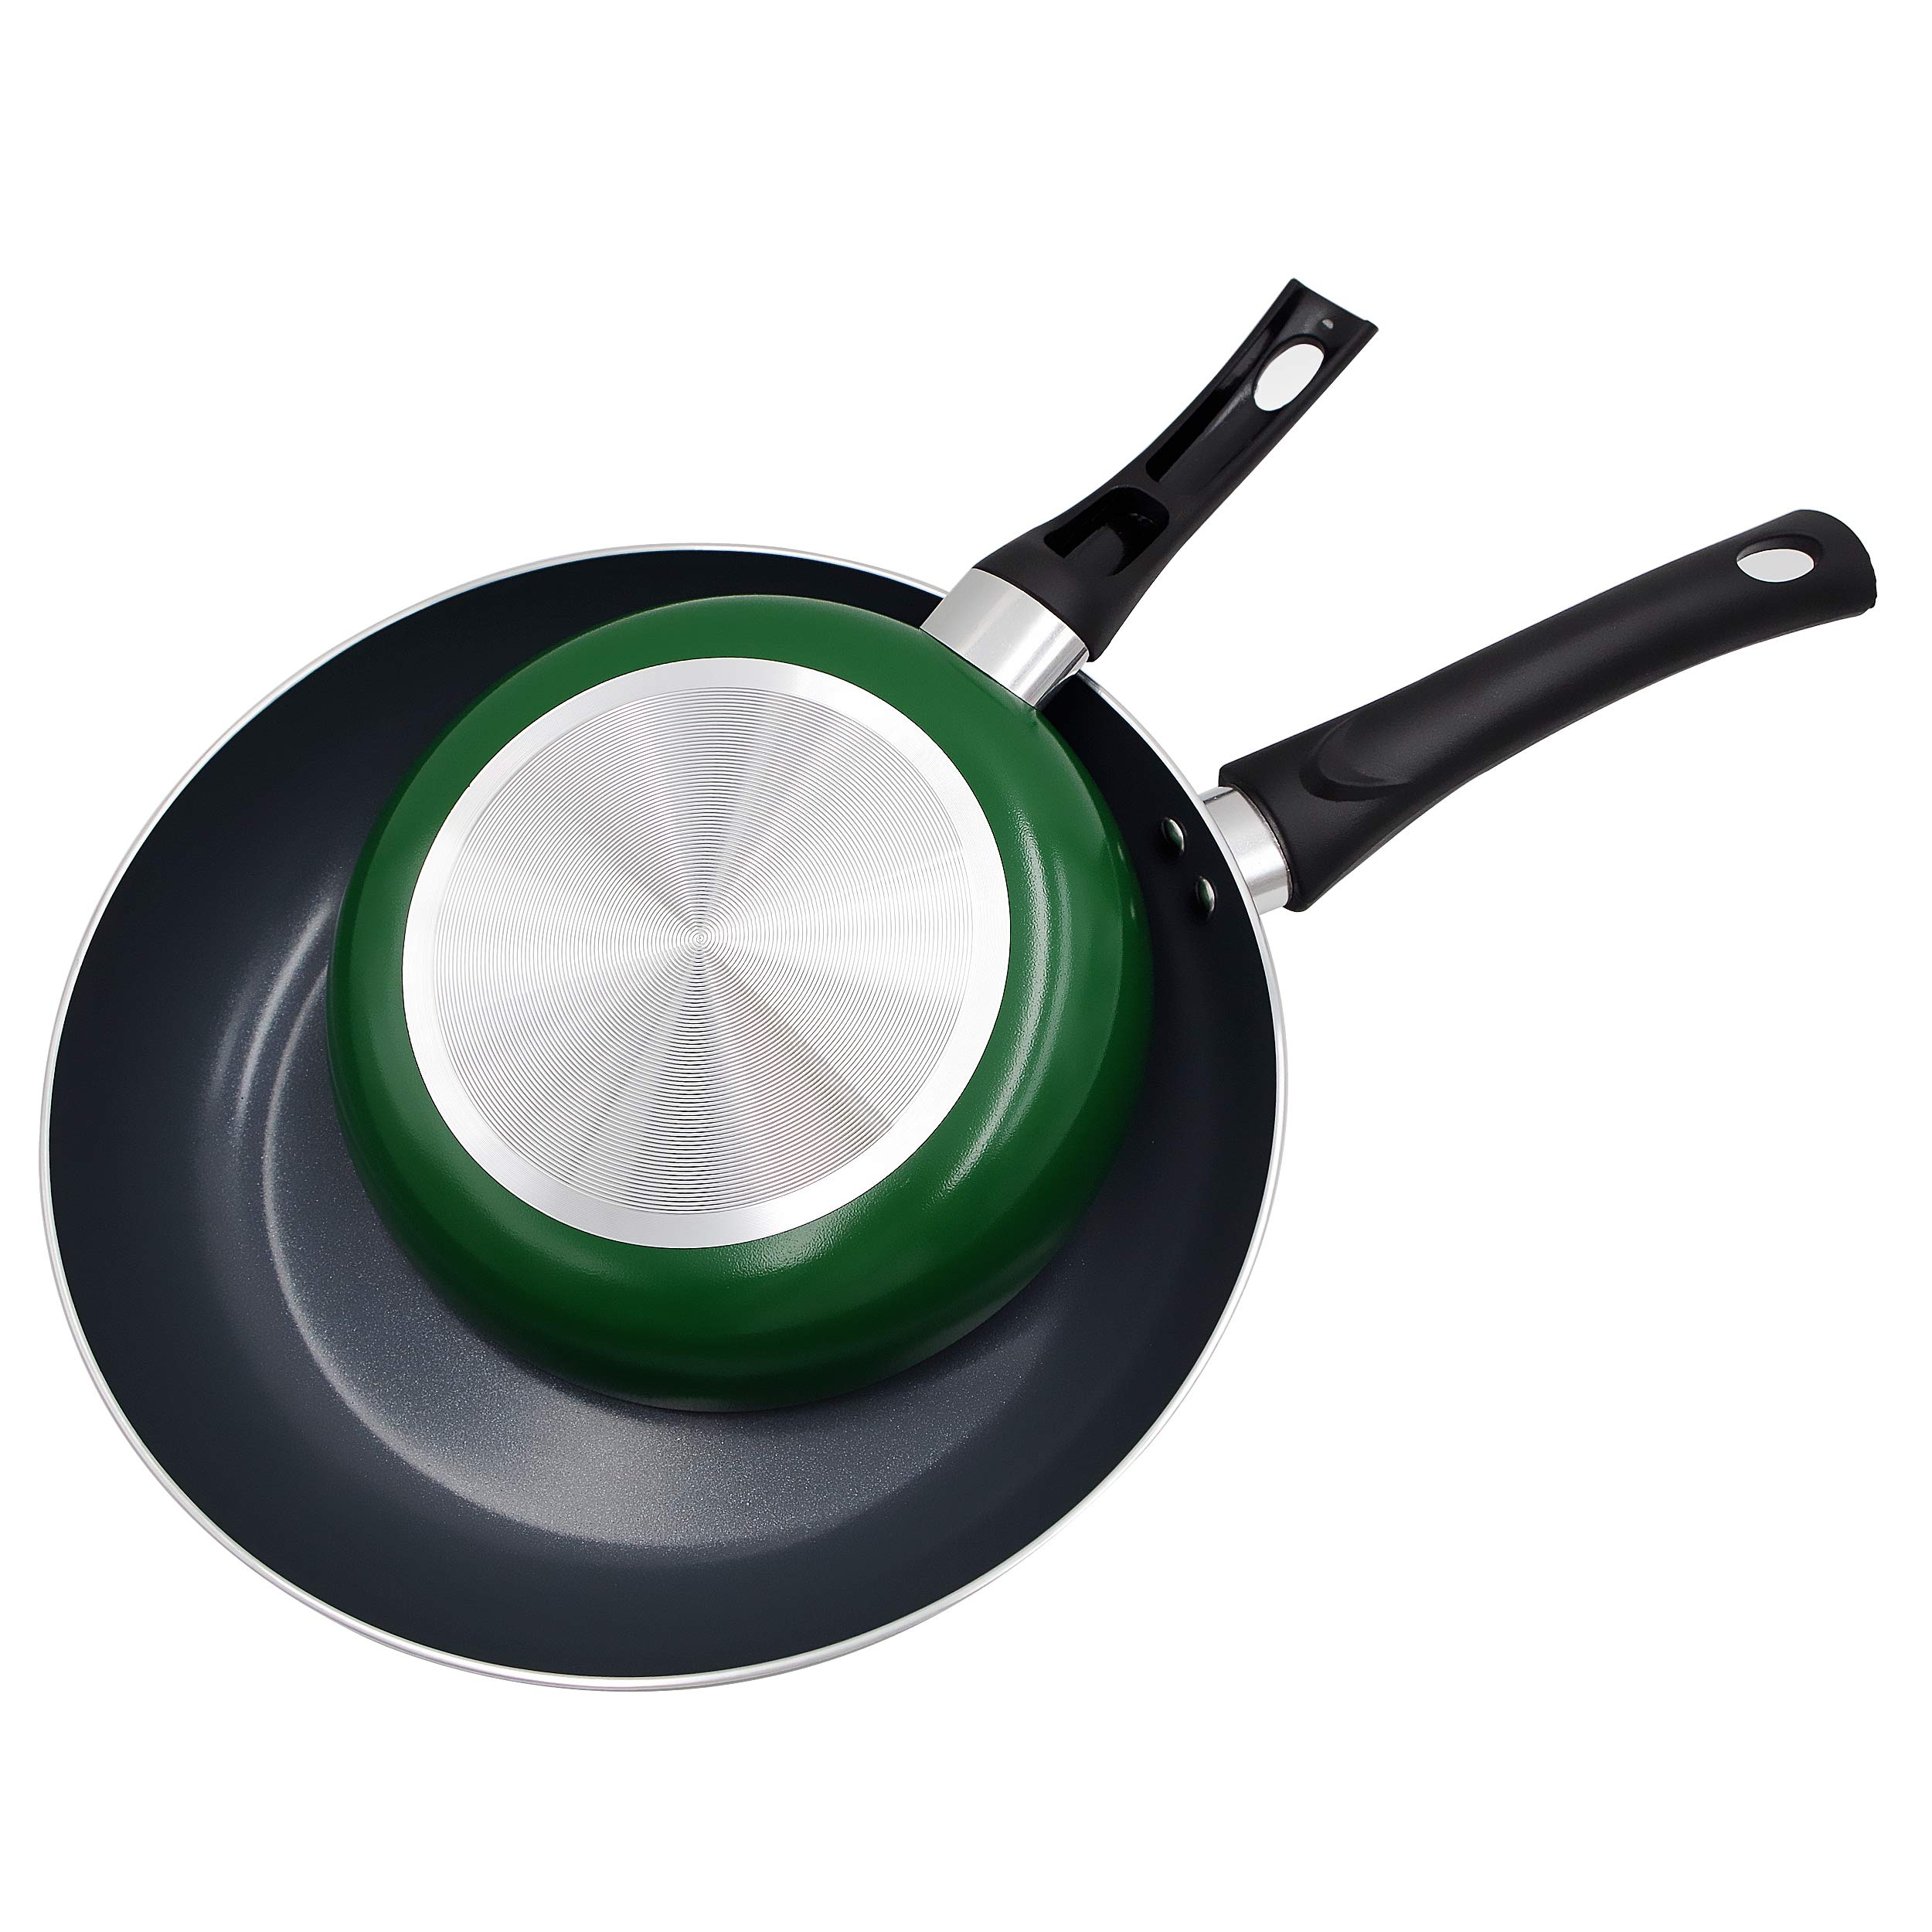 Aidea Ceramic Nonstick Frying Pans - 8 Inches 11-Inch Set Green